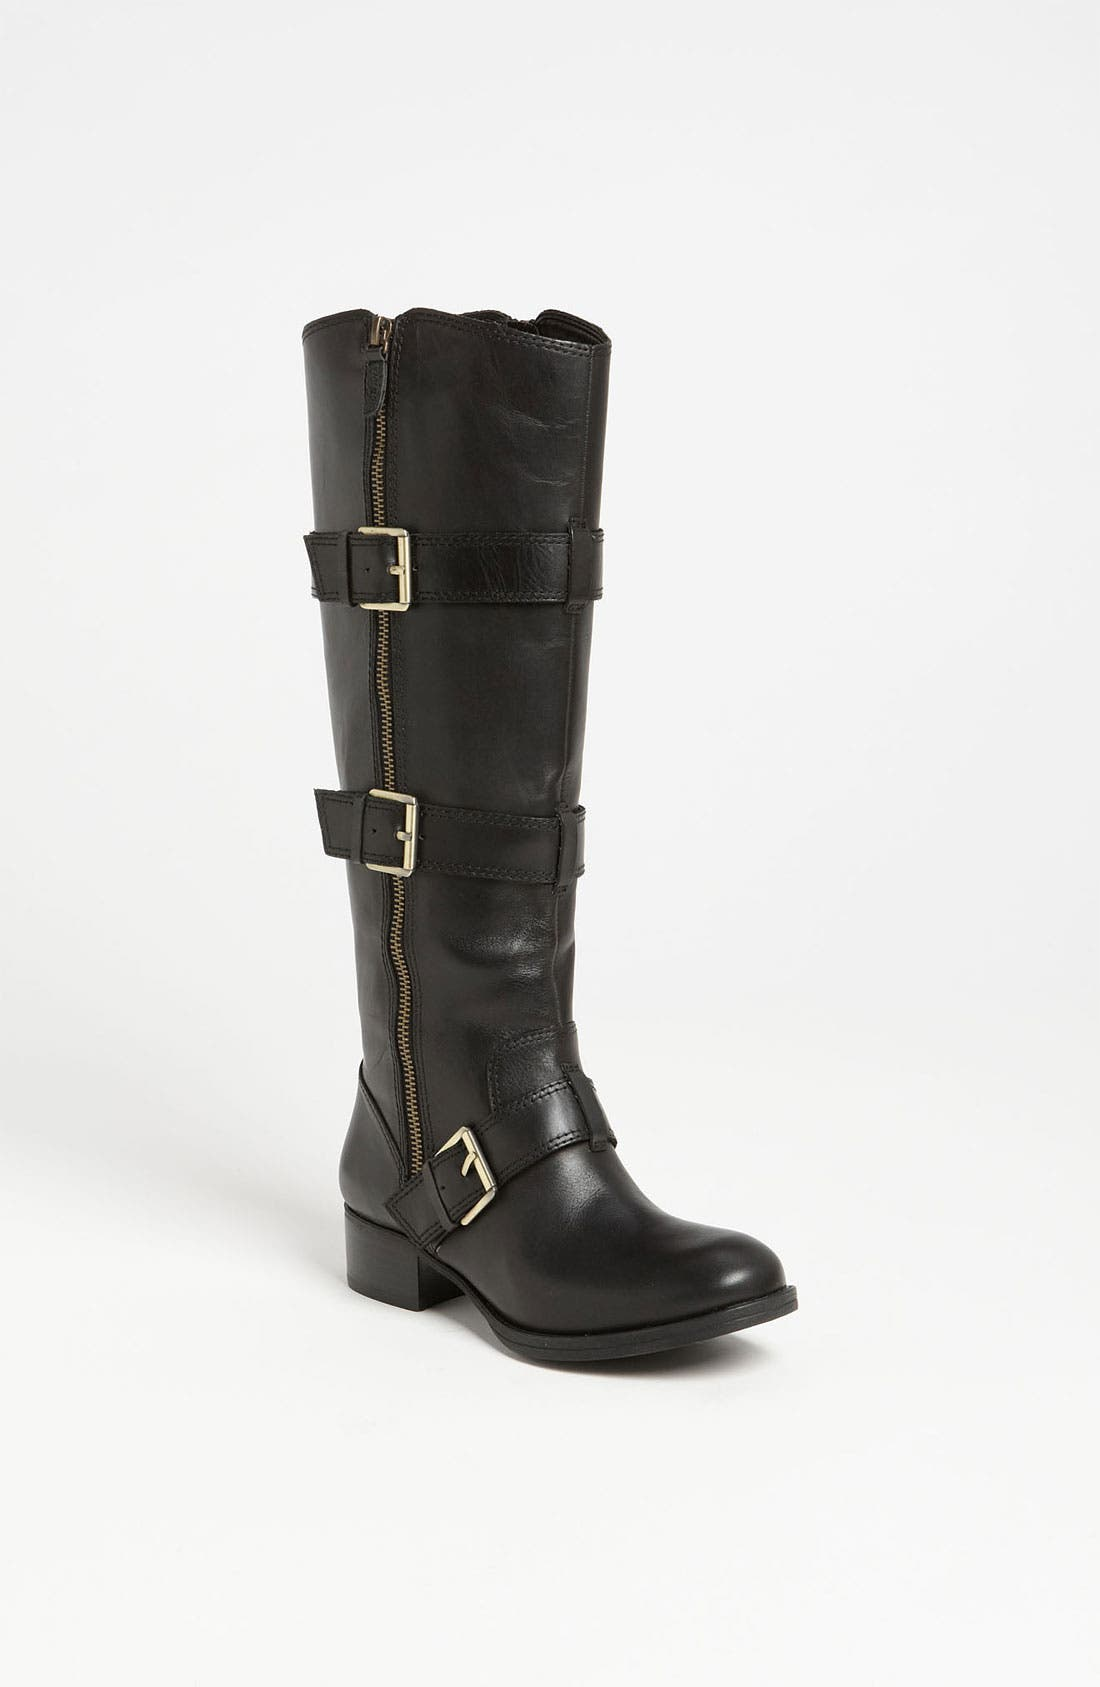 Alternate Image 1 Selected - Boutique 9 'Dacia' Boot